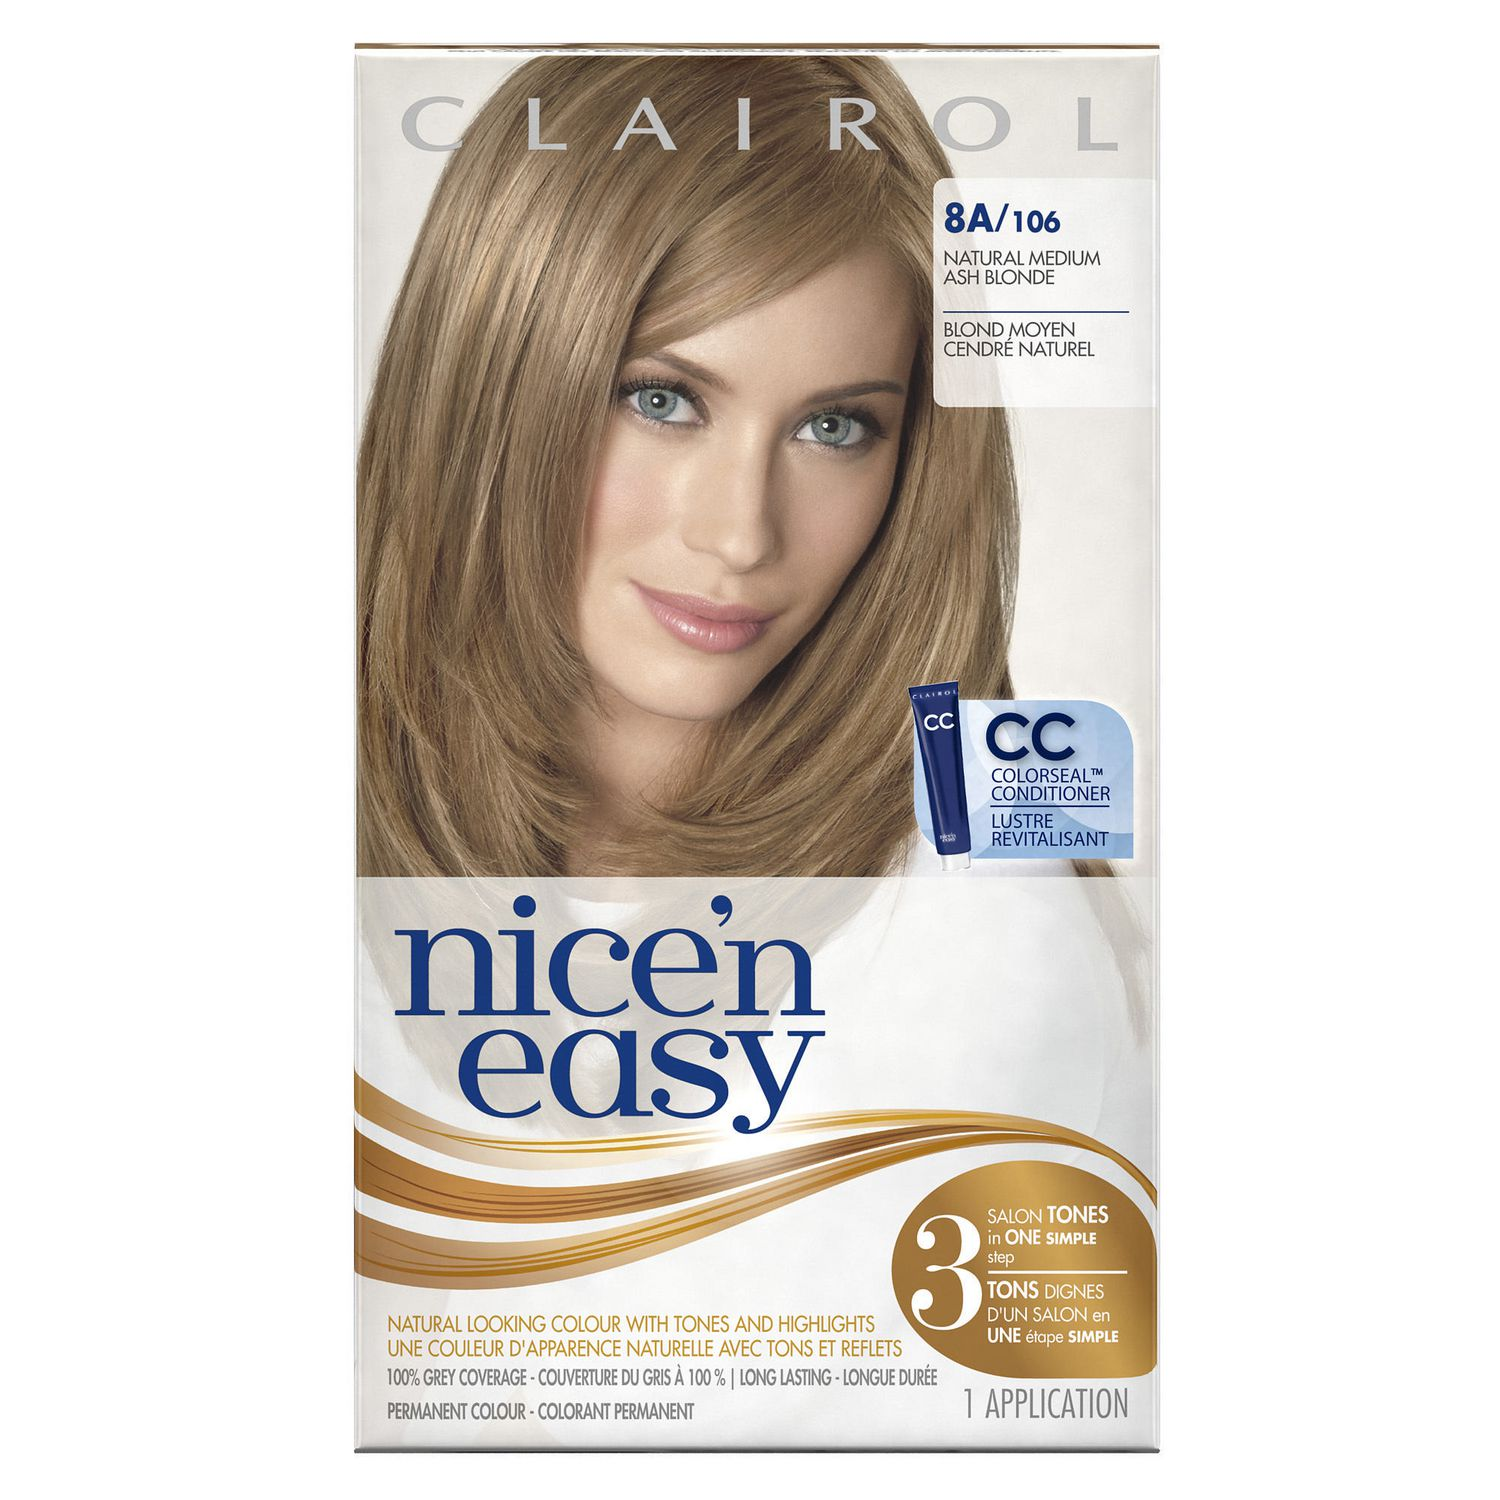 Clairol Nicen Easy Hair Colour 1 Kit Walmart Canada